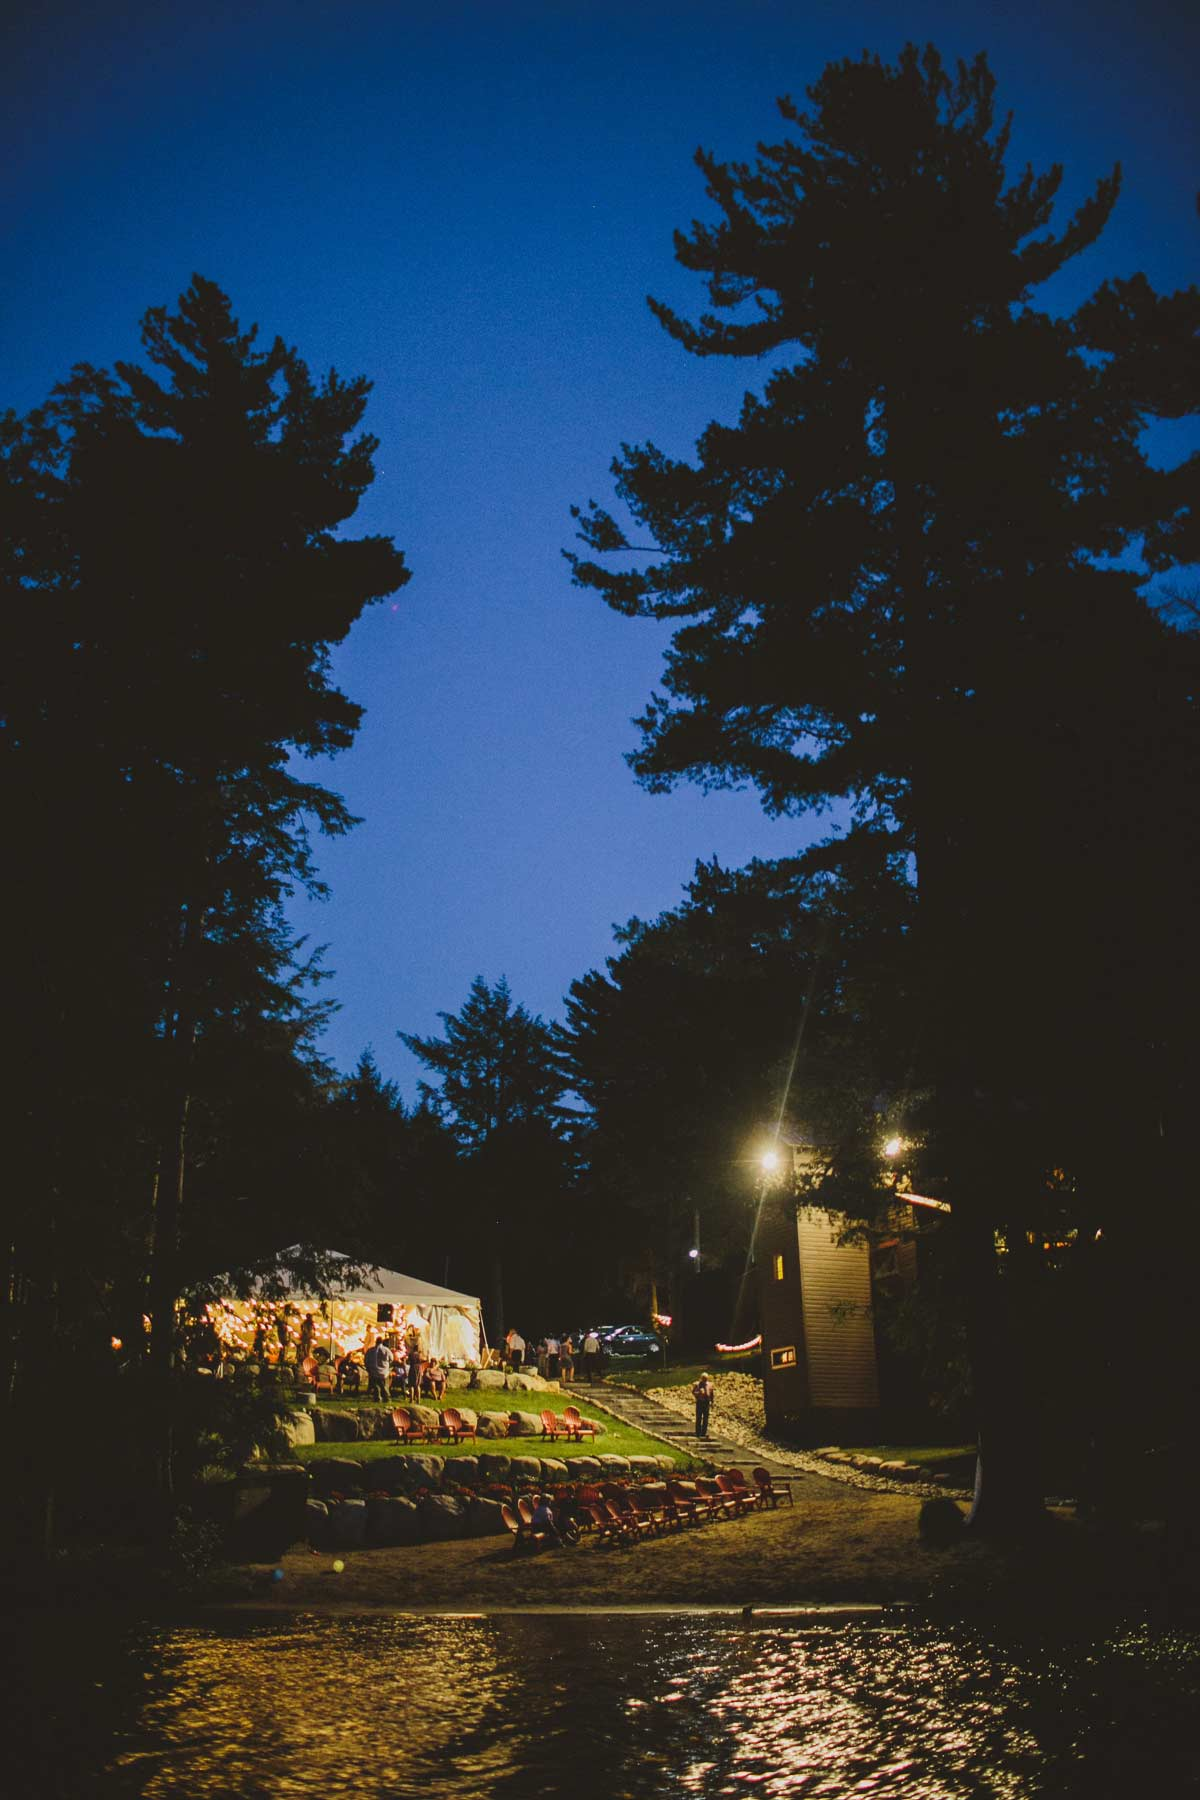 Wedding and Lodging Adirondack